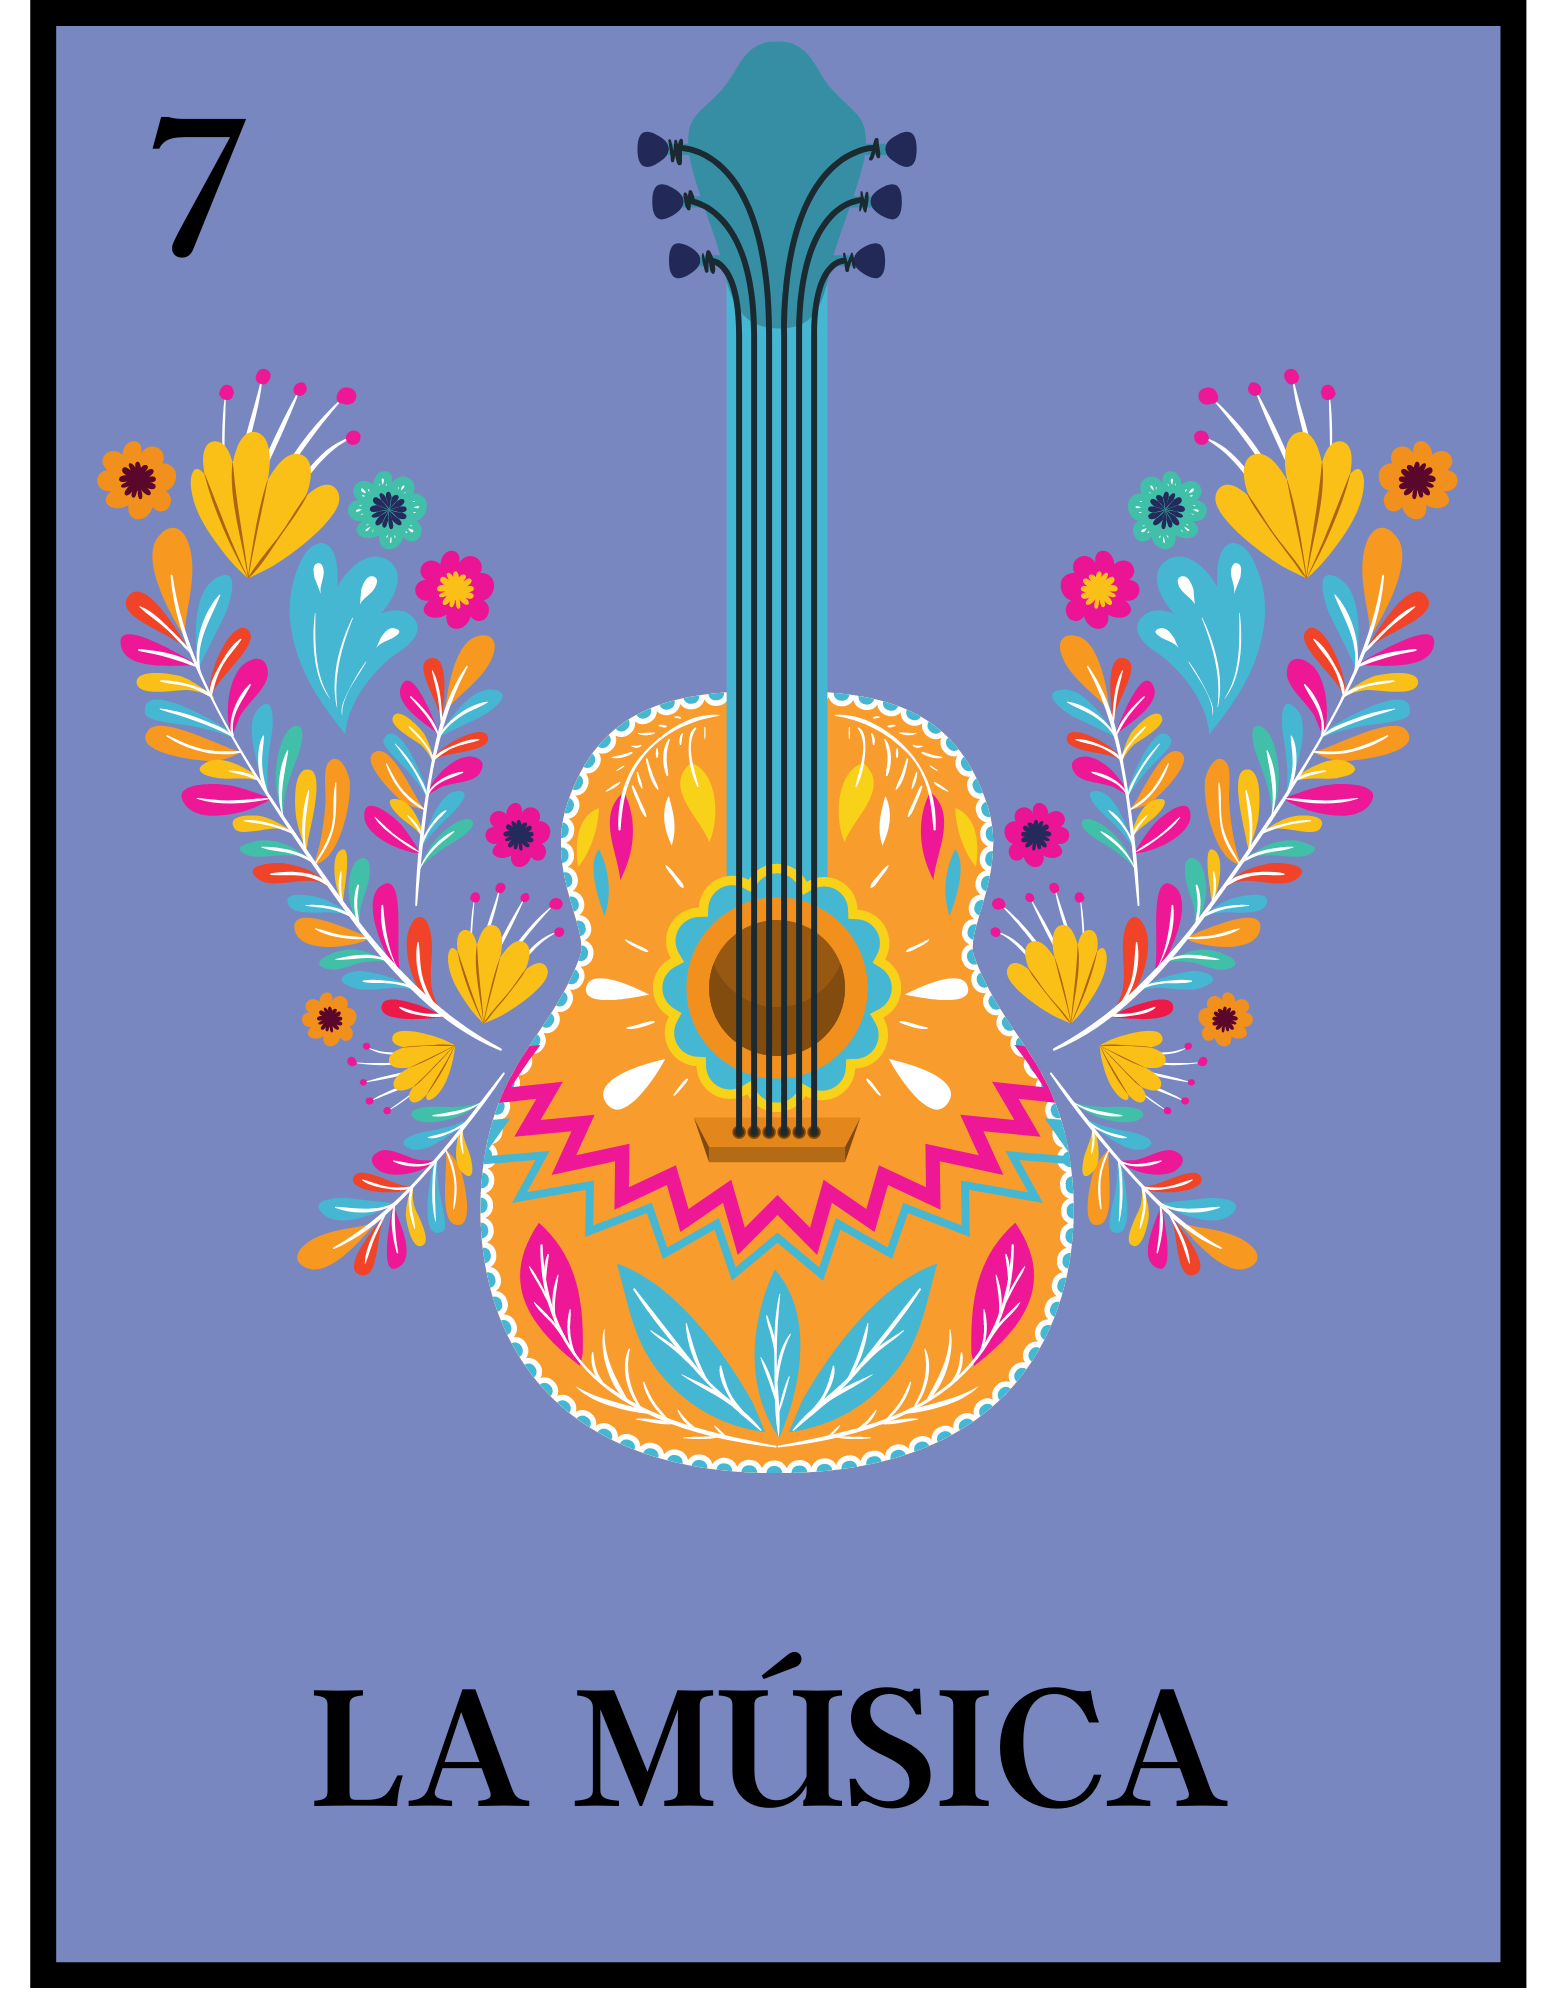 A decorated guitar with a label of La Musica